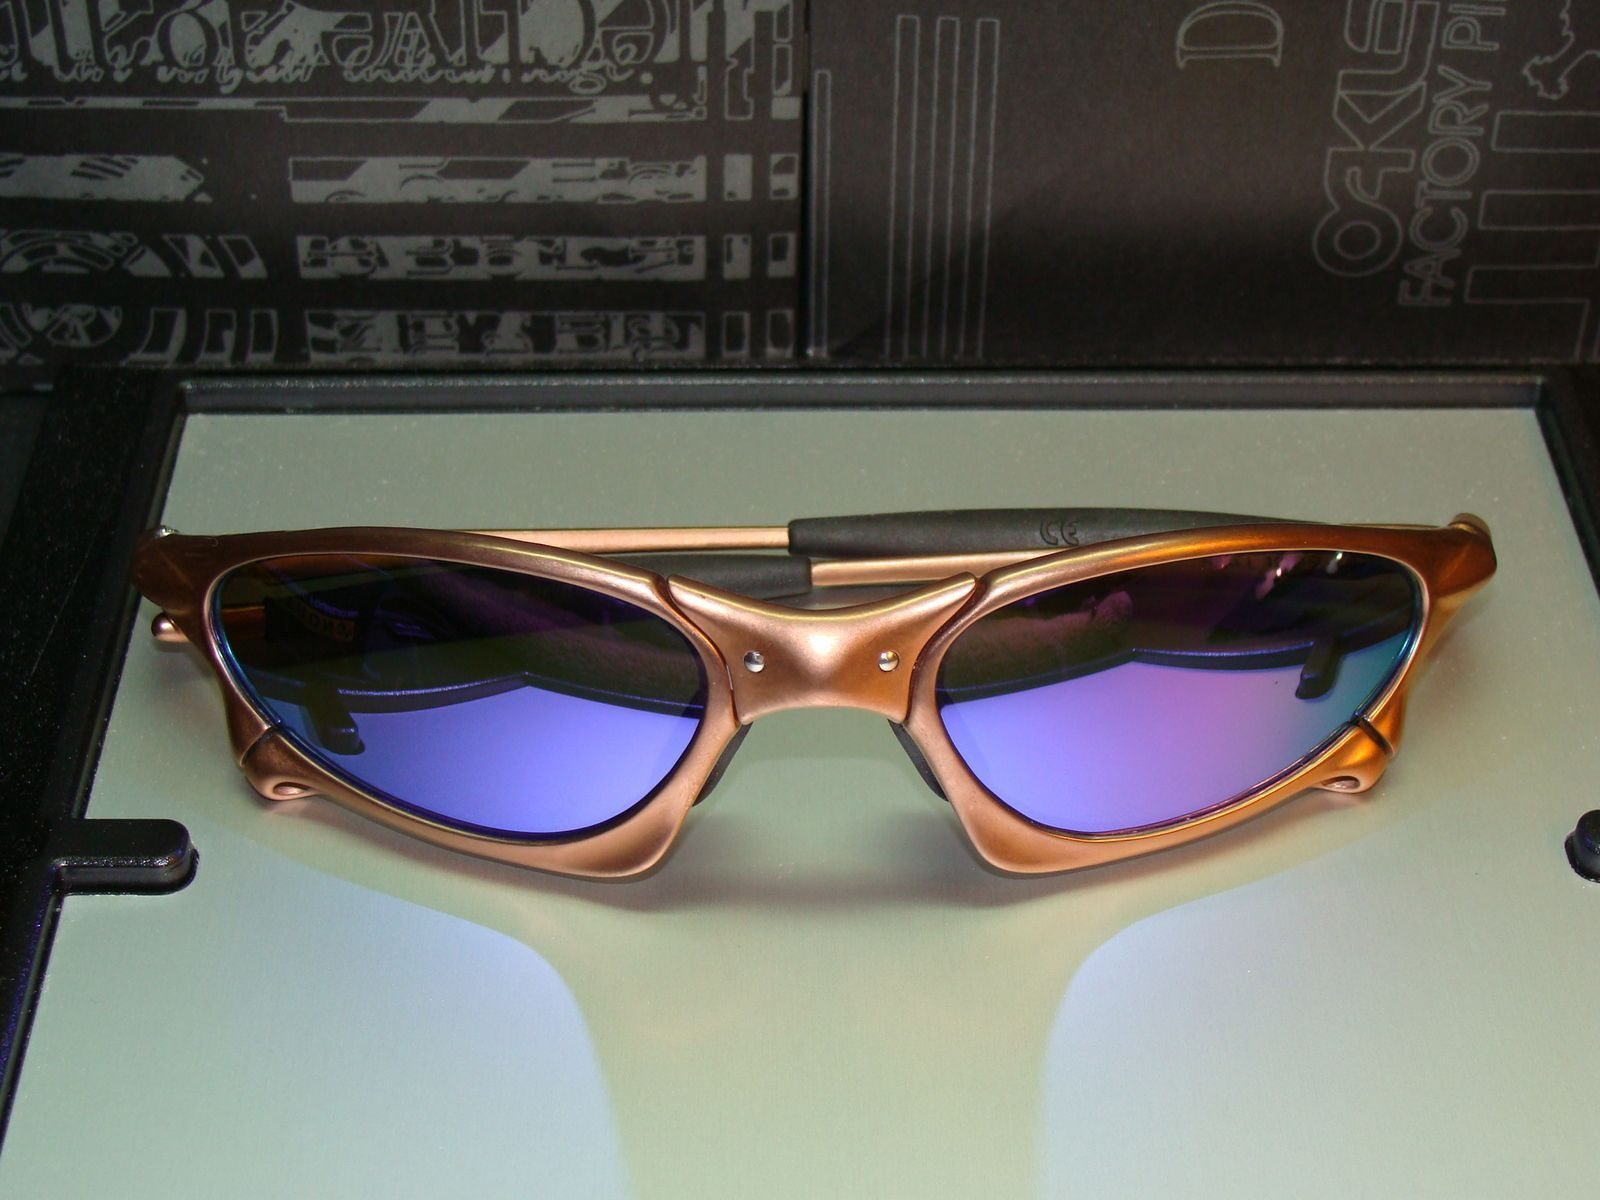 Custom Cut Violet Iridium Lenses For A Penny - dsc03607db.jpg